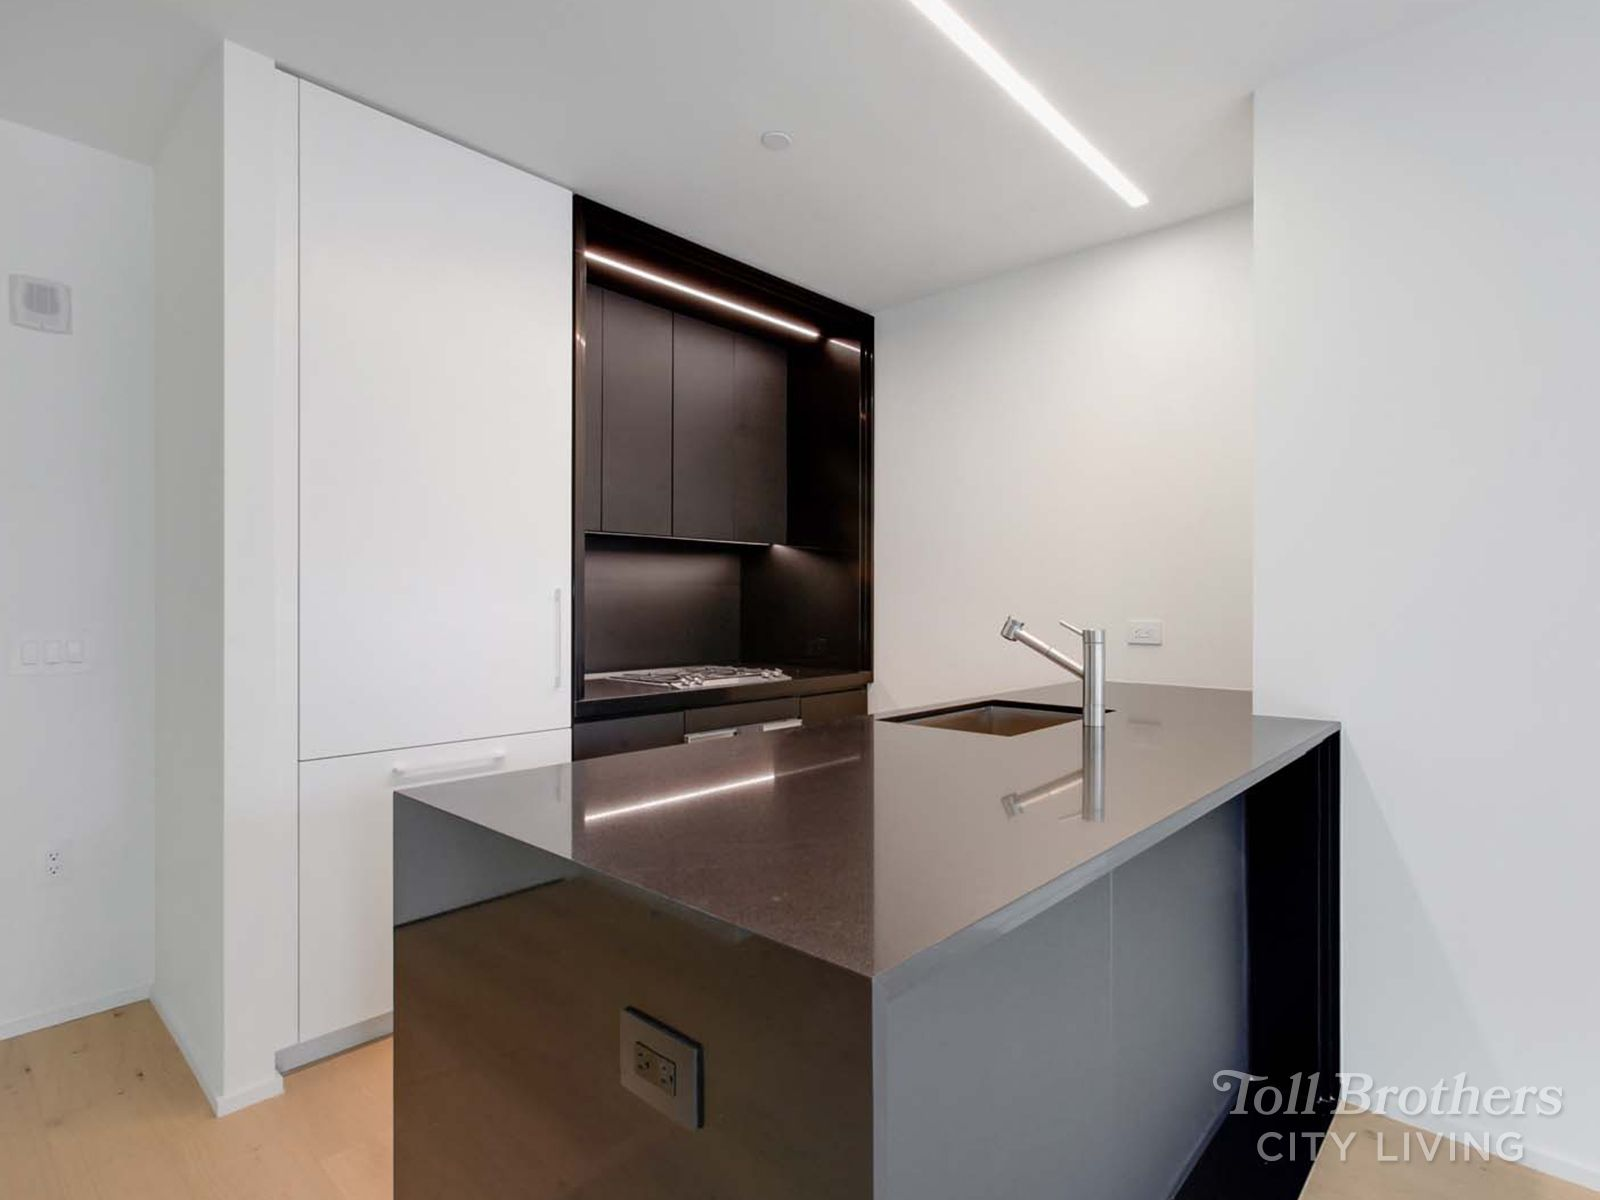 Kitchen featured in the N503 By Toll Brothers in New York, NY